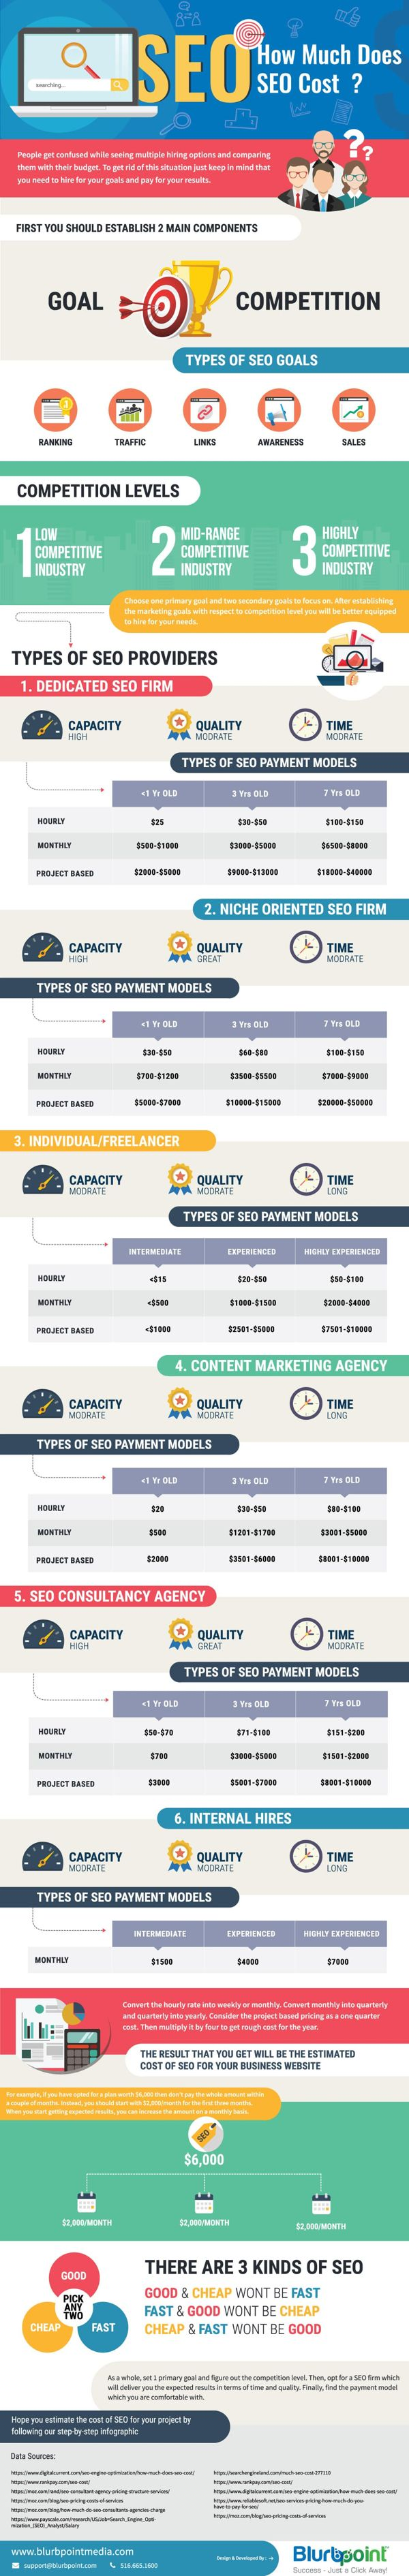 How Much Does SEO Cost? 1